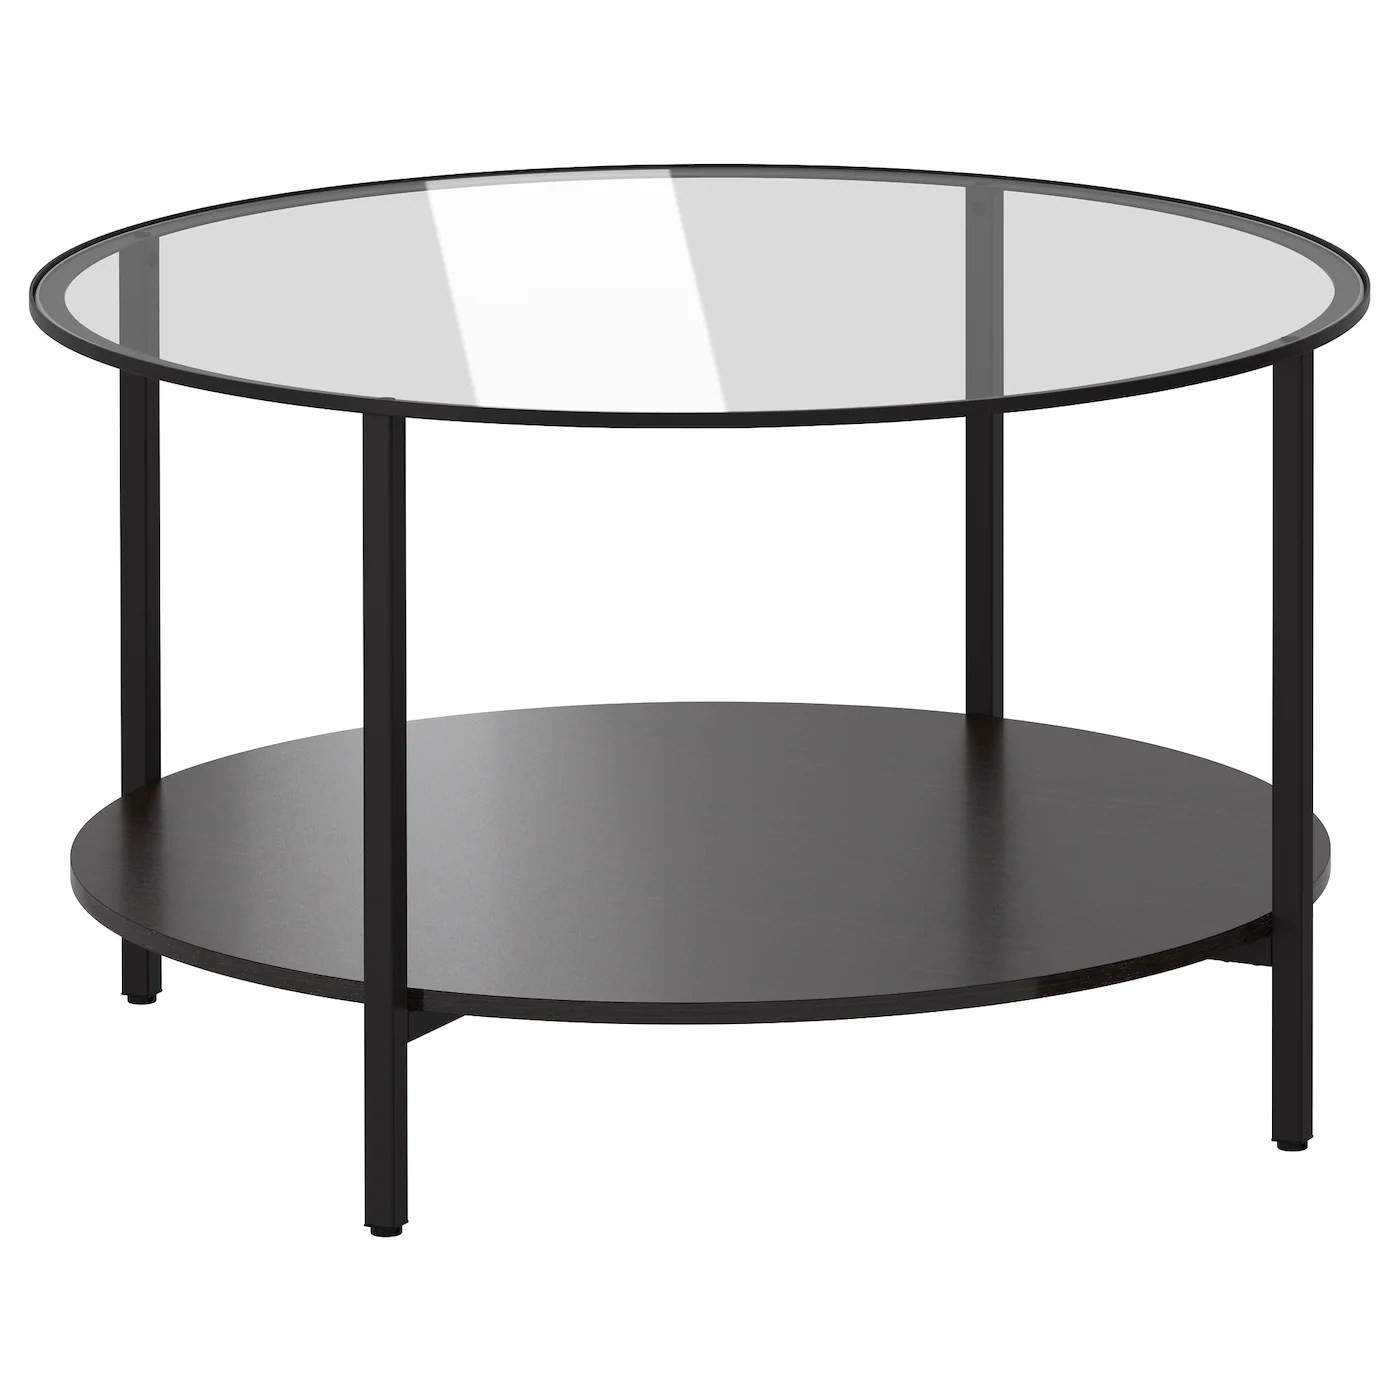 Ikea Table Basse Noir VittsjÖ Table Basse Brun Noir Verre